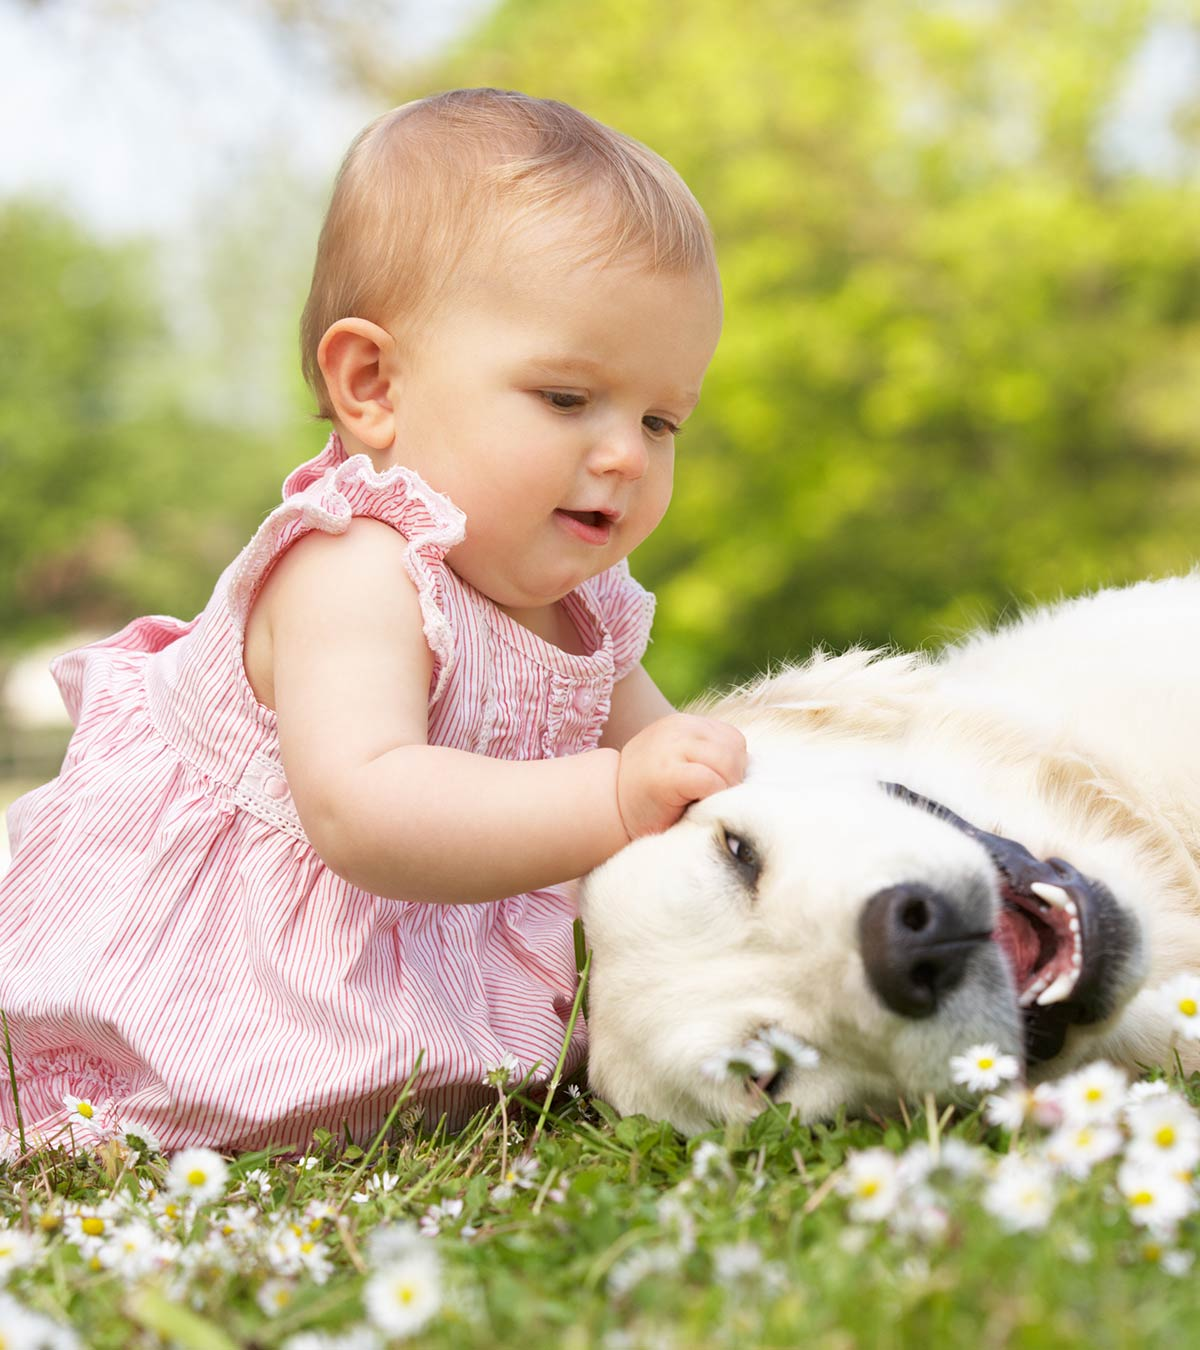 Dog Allergies In Infants - Symptoms, Causes And Treatments